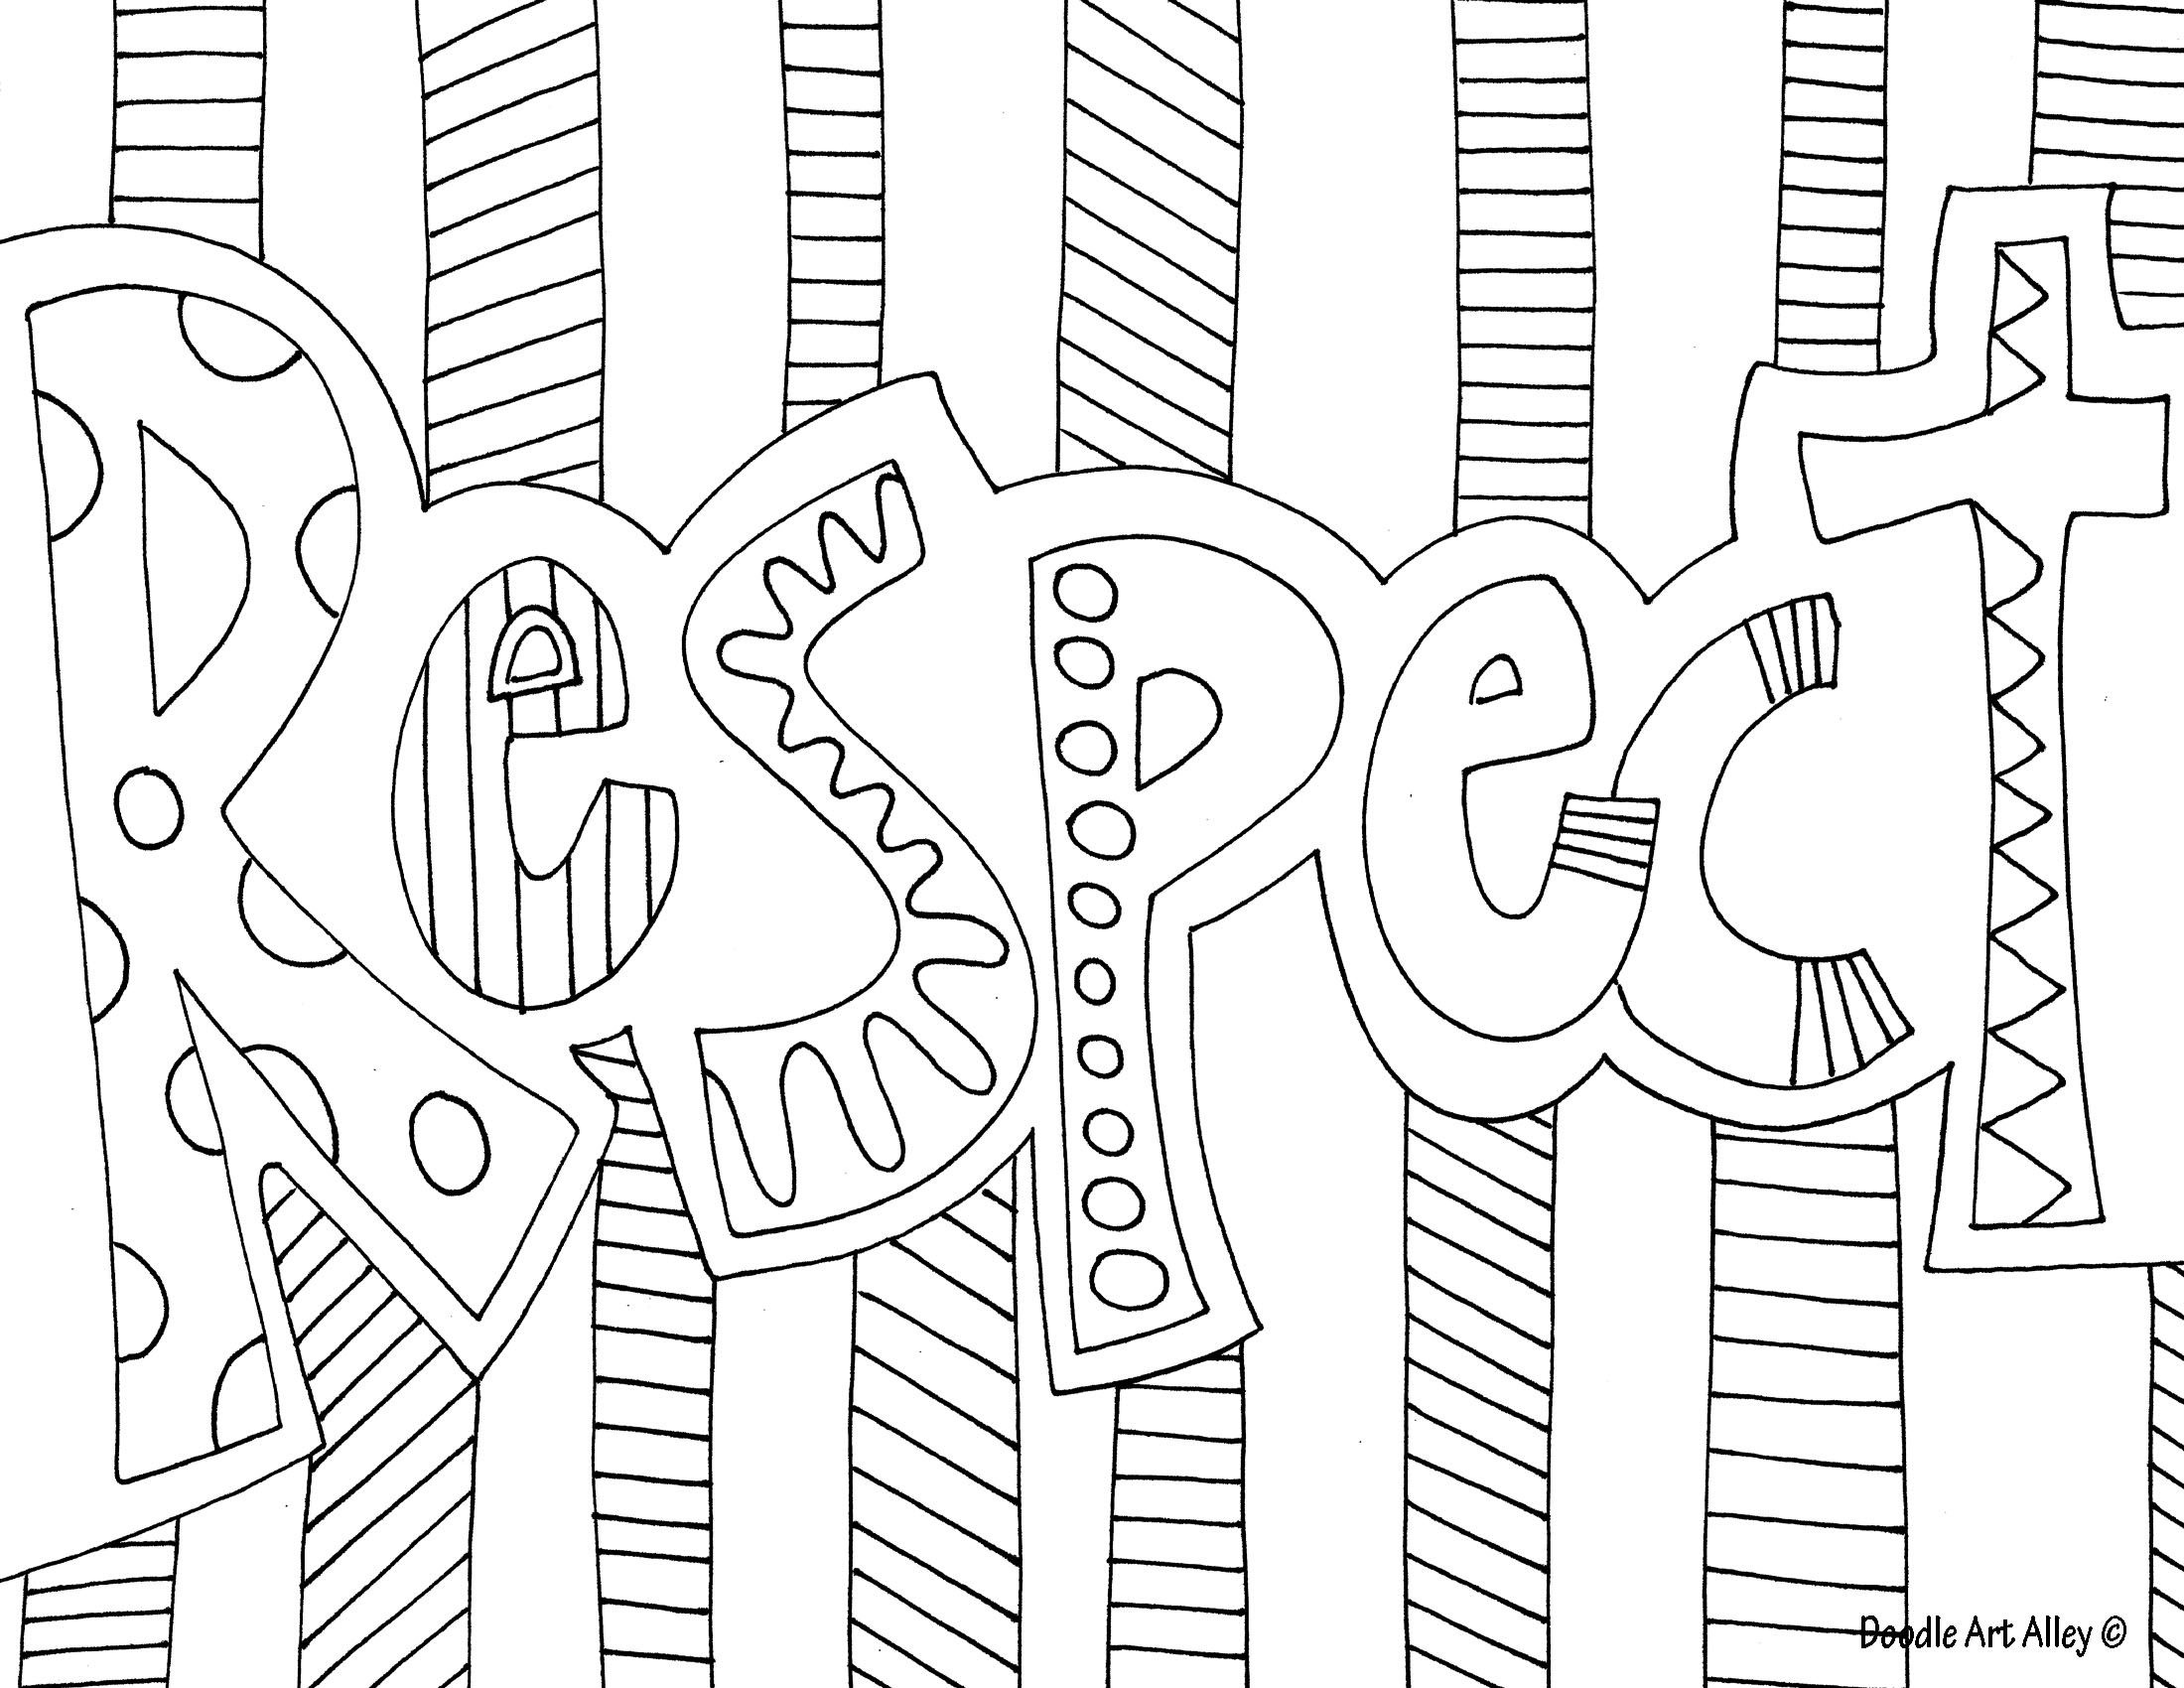 Pinbrittany Jones On Lettering | Doodle Art, Adult Coloring - Free Printable Coloring Pages On Respect